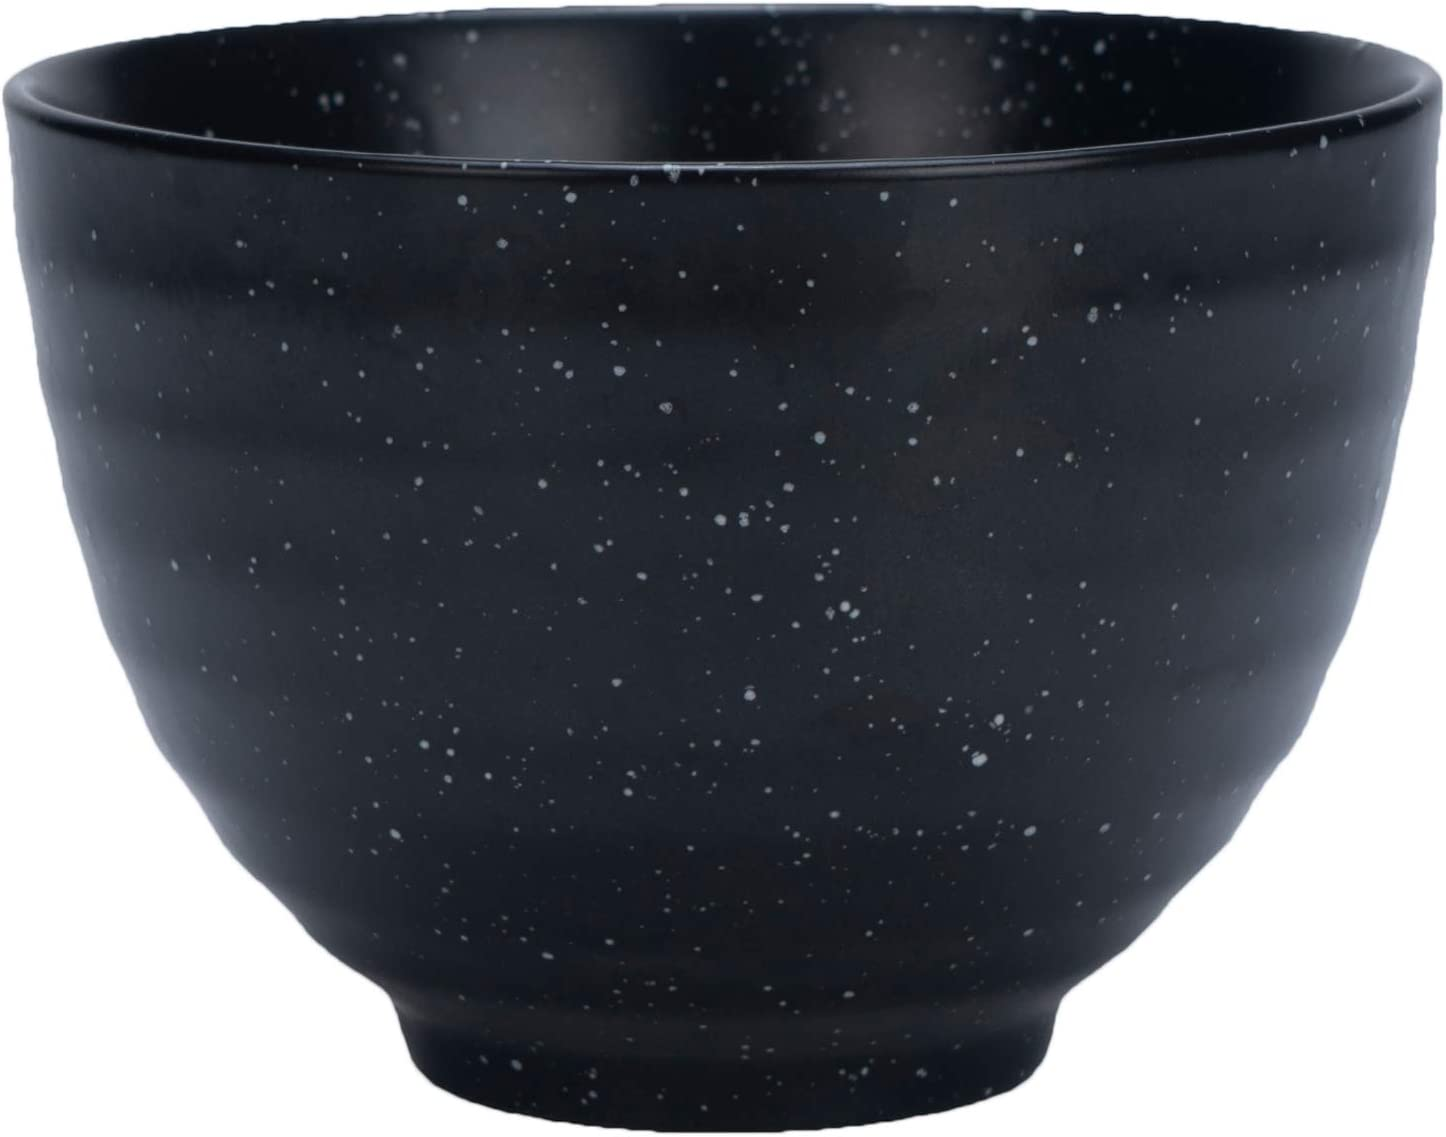 Black Matcha Tea Bowl (Ceramic) Classic Japanese Drinking Cup | Daily and Ceremonial Grade Use | Authentic Asian Experience | Heavy-Duty Ceramic Finish